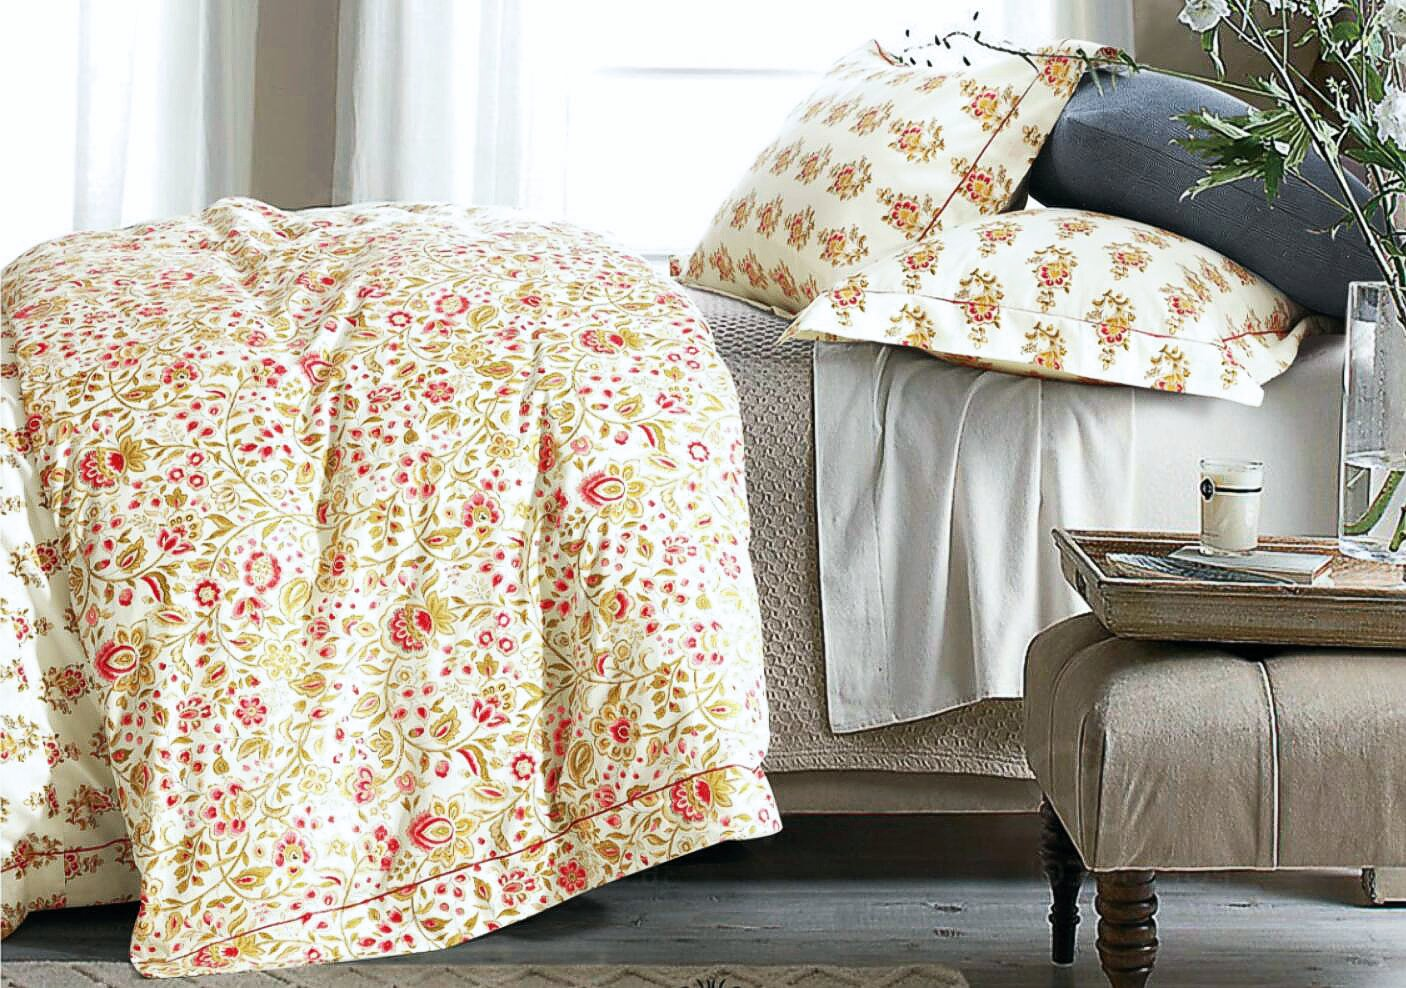 Cottage Country Style 3 Piece Duvet Cover Set Multicolored Roses